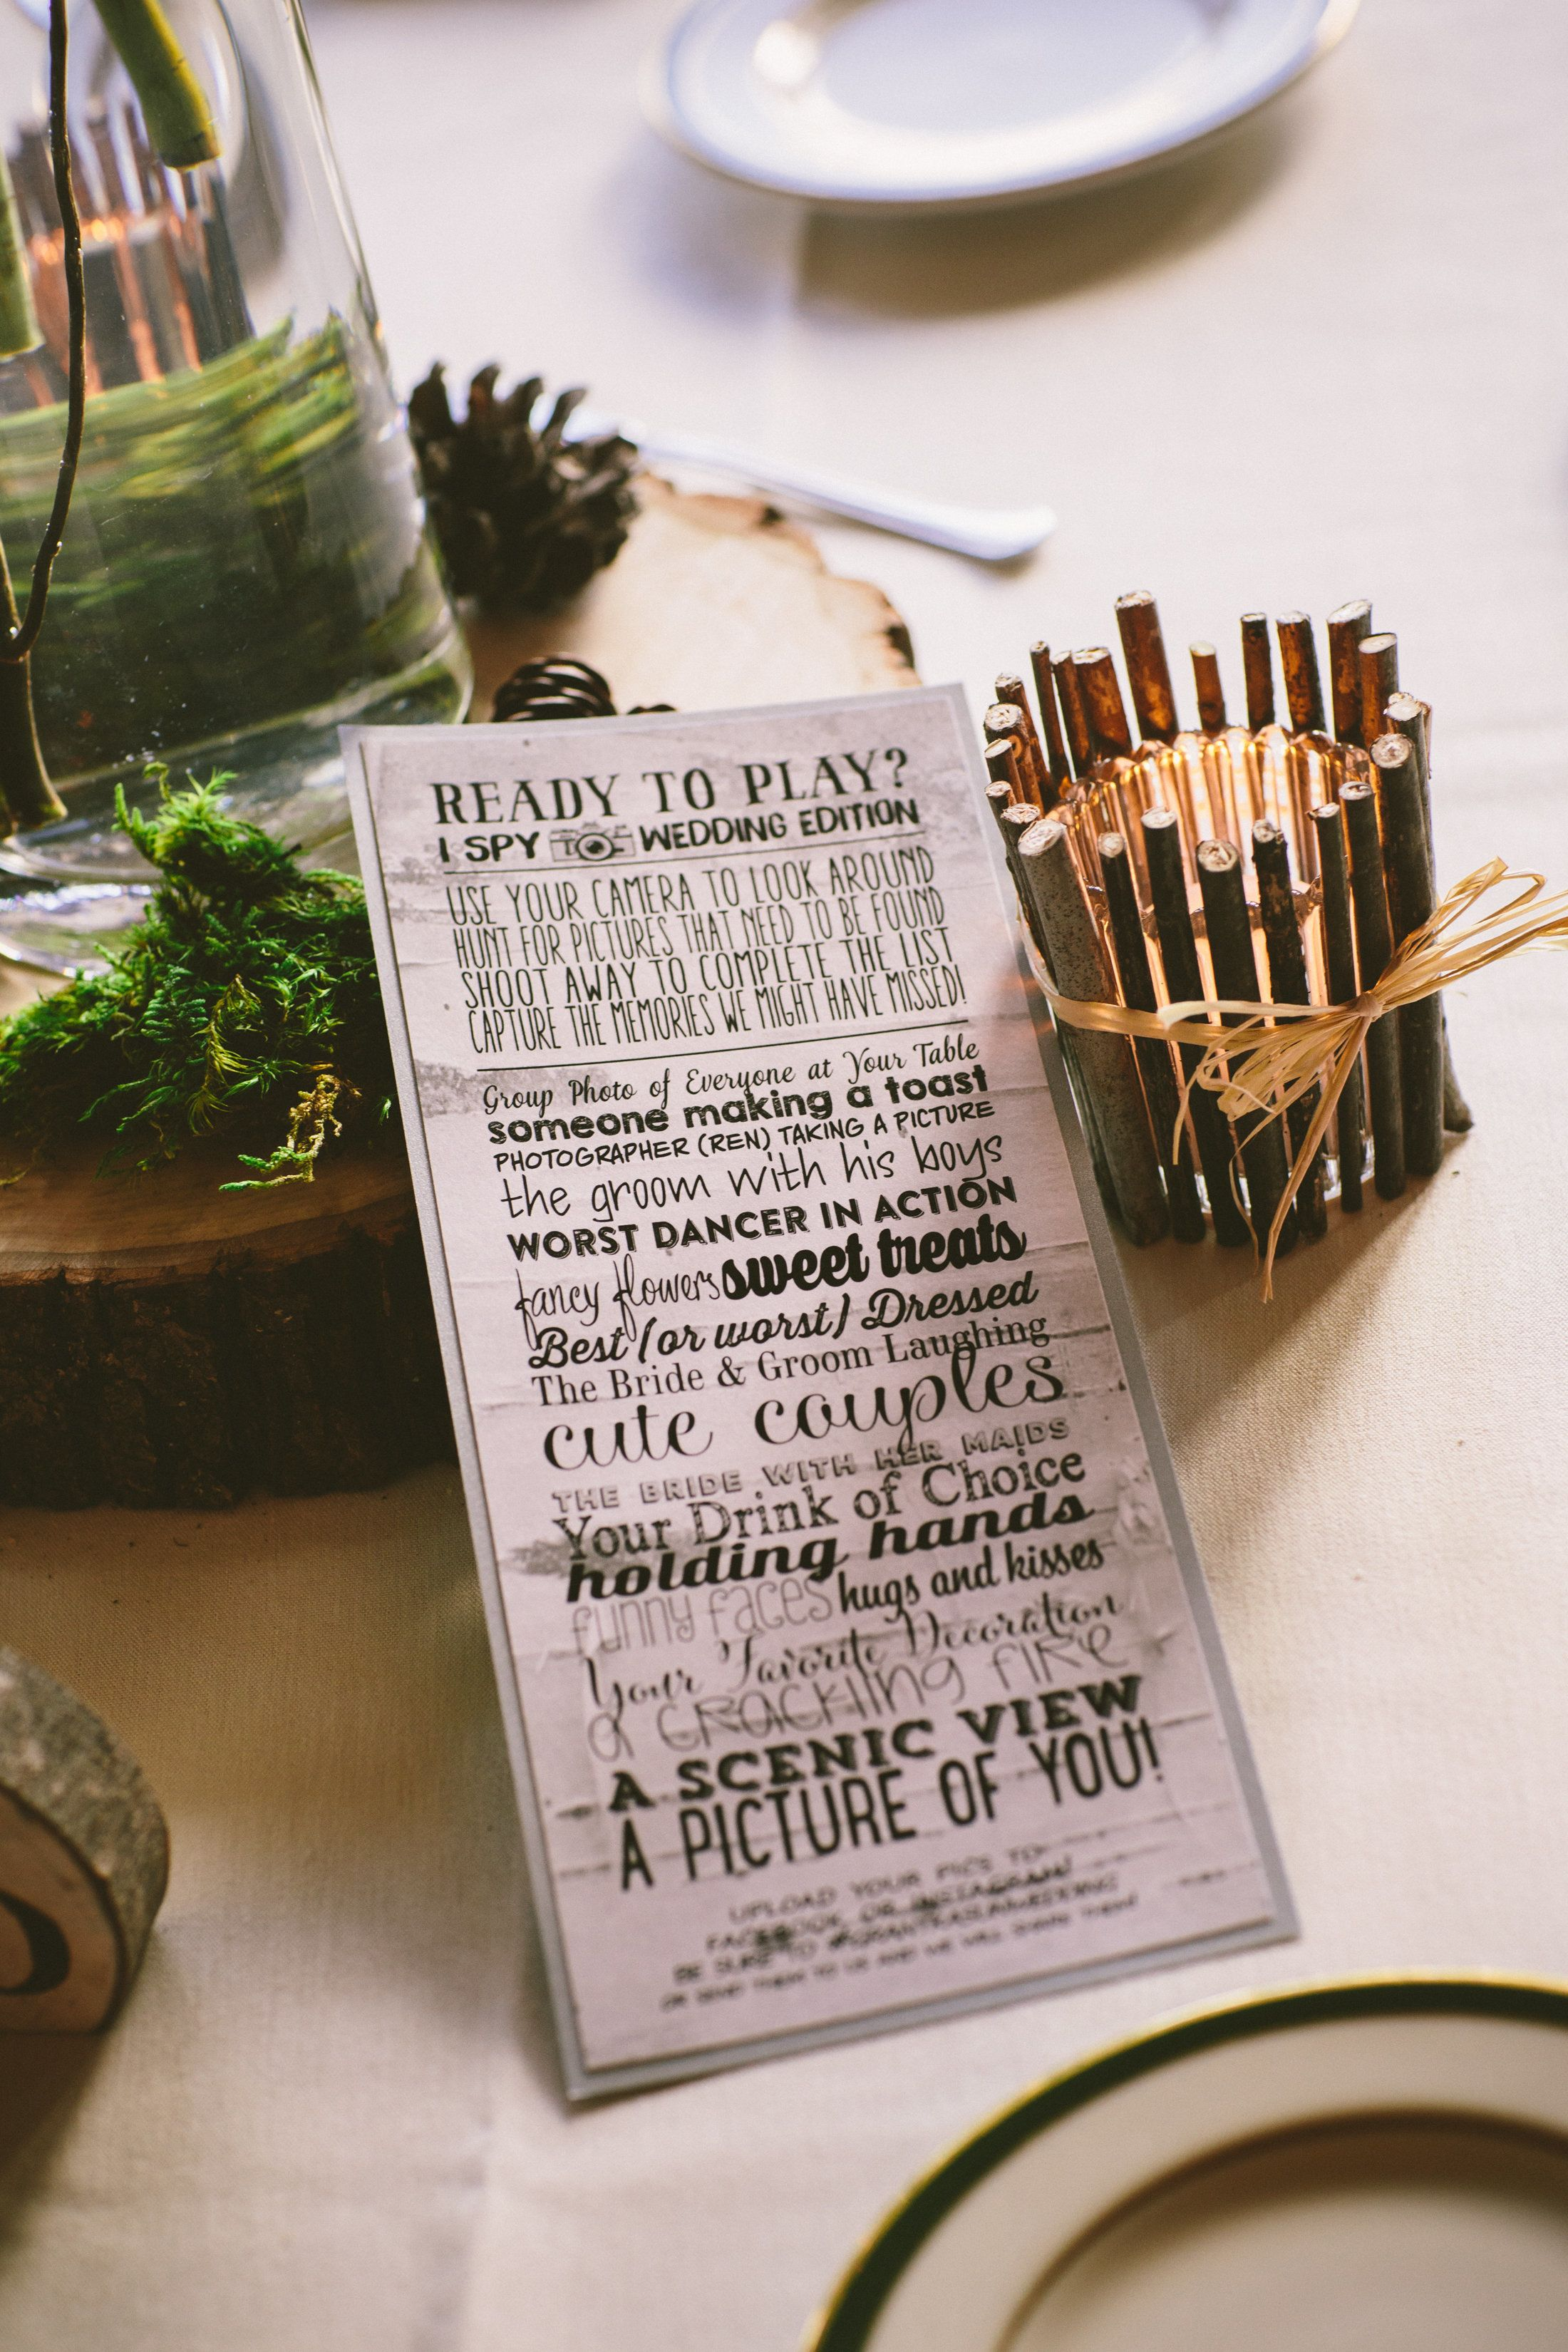 19 Straight Up Awesome Wedding Ideas Youu0027ll Wish You Thought Of First |  HuffPost